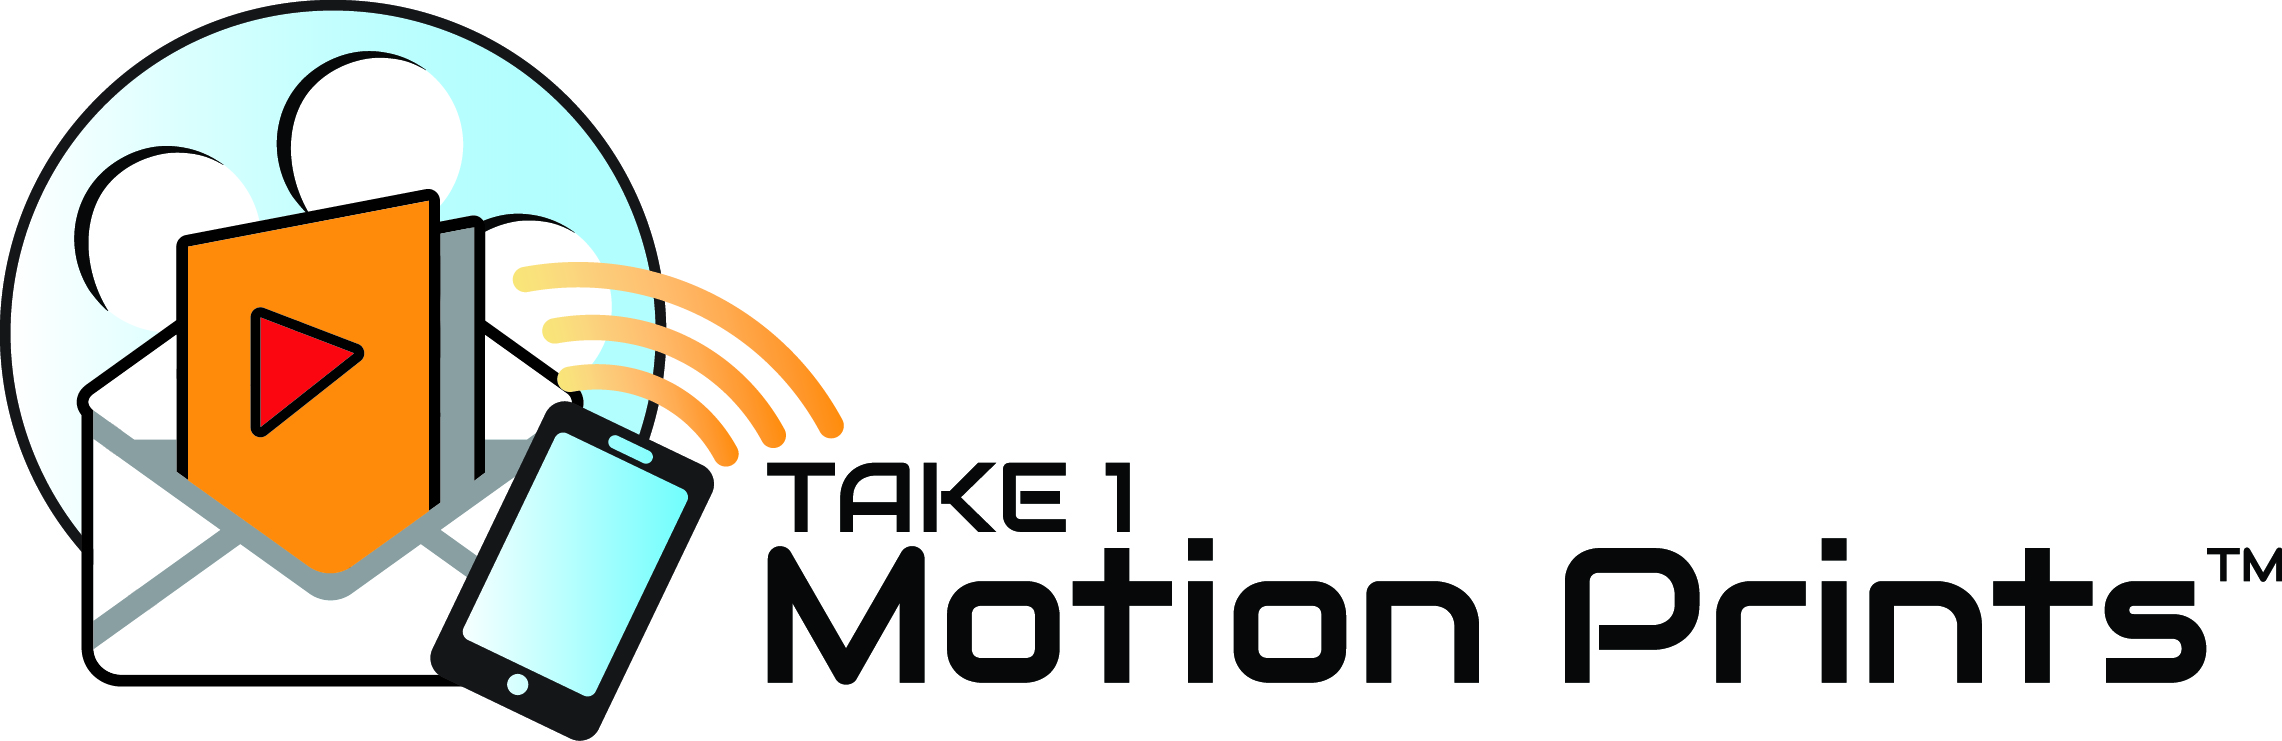 Take 1 Motion Prints, Berkeley, CA - Localwise business profile picture